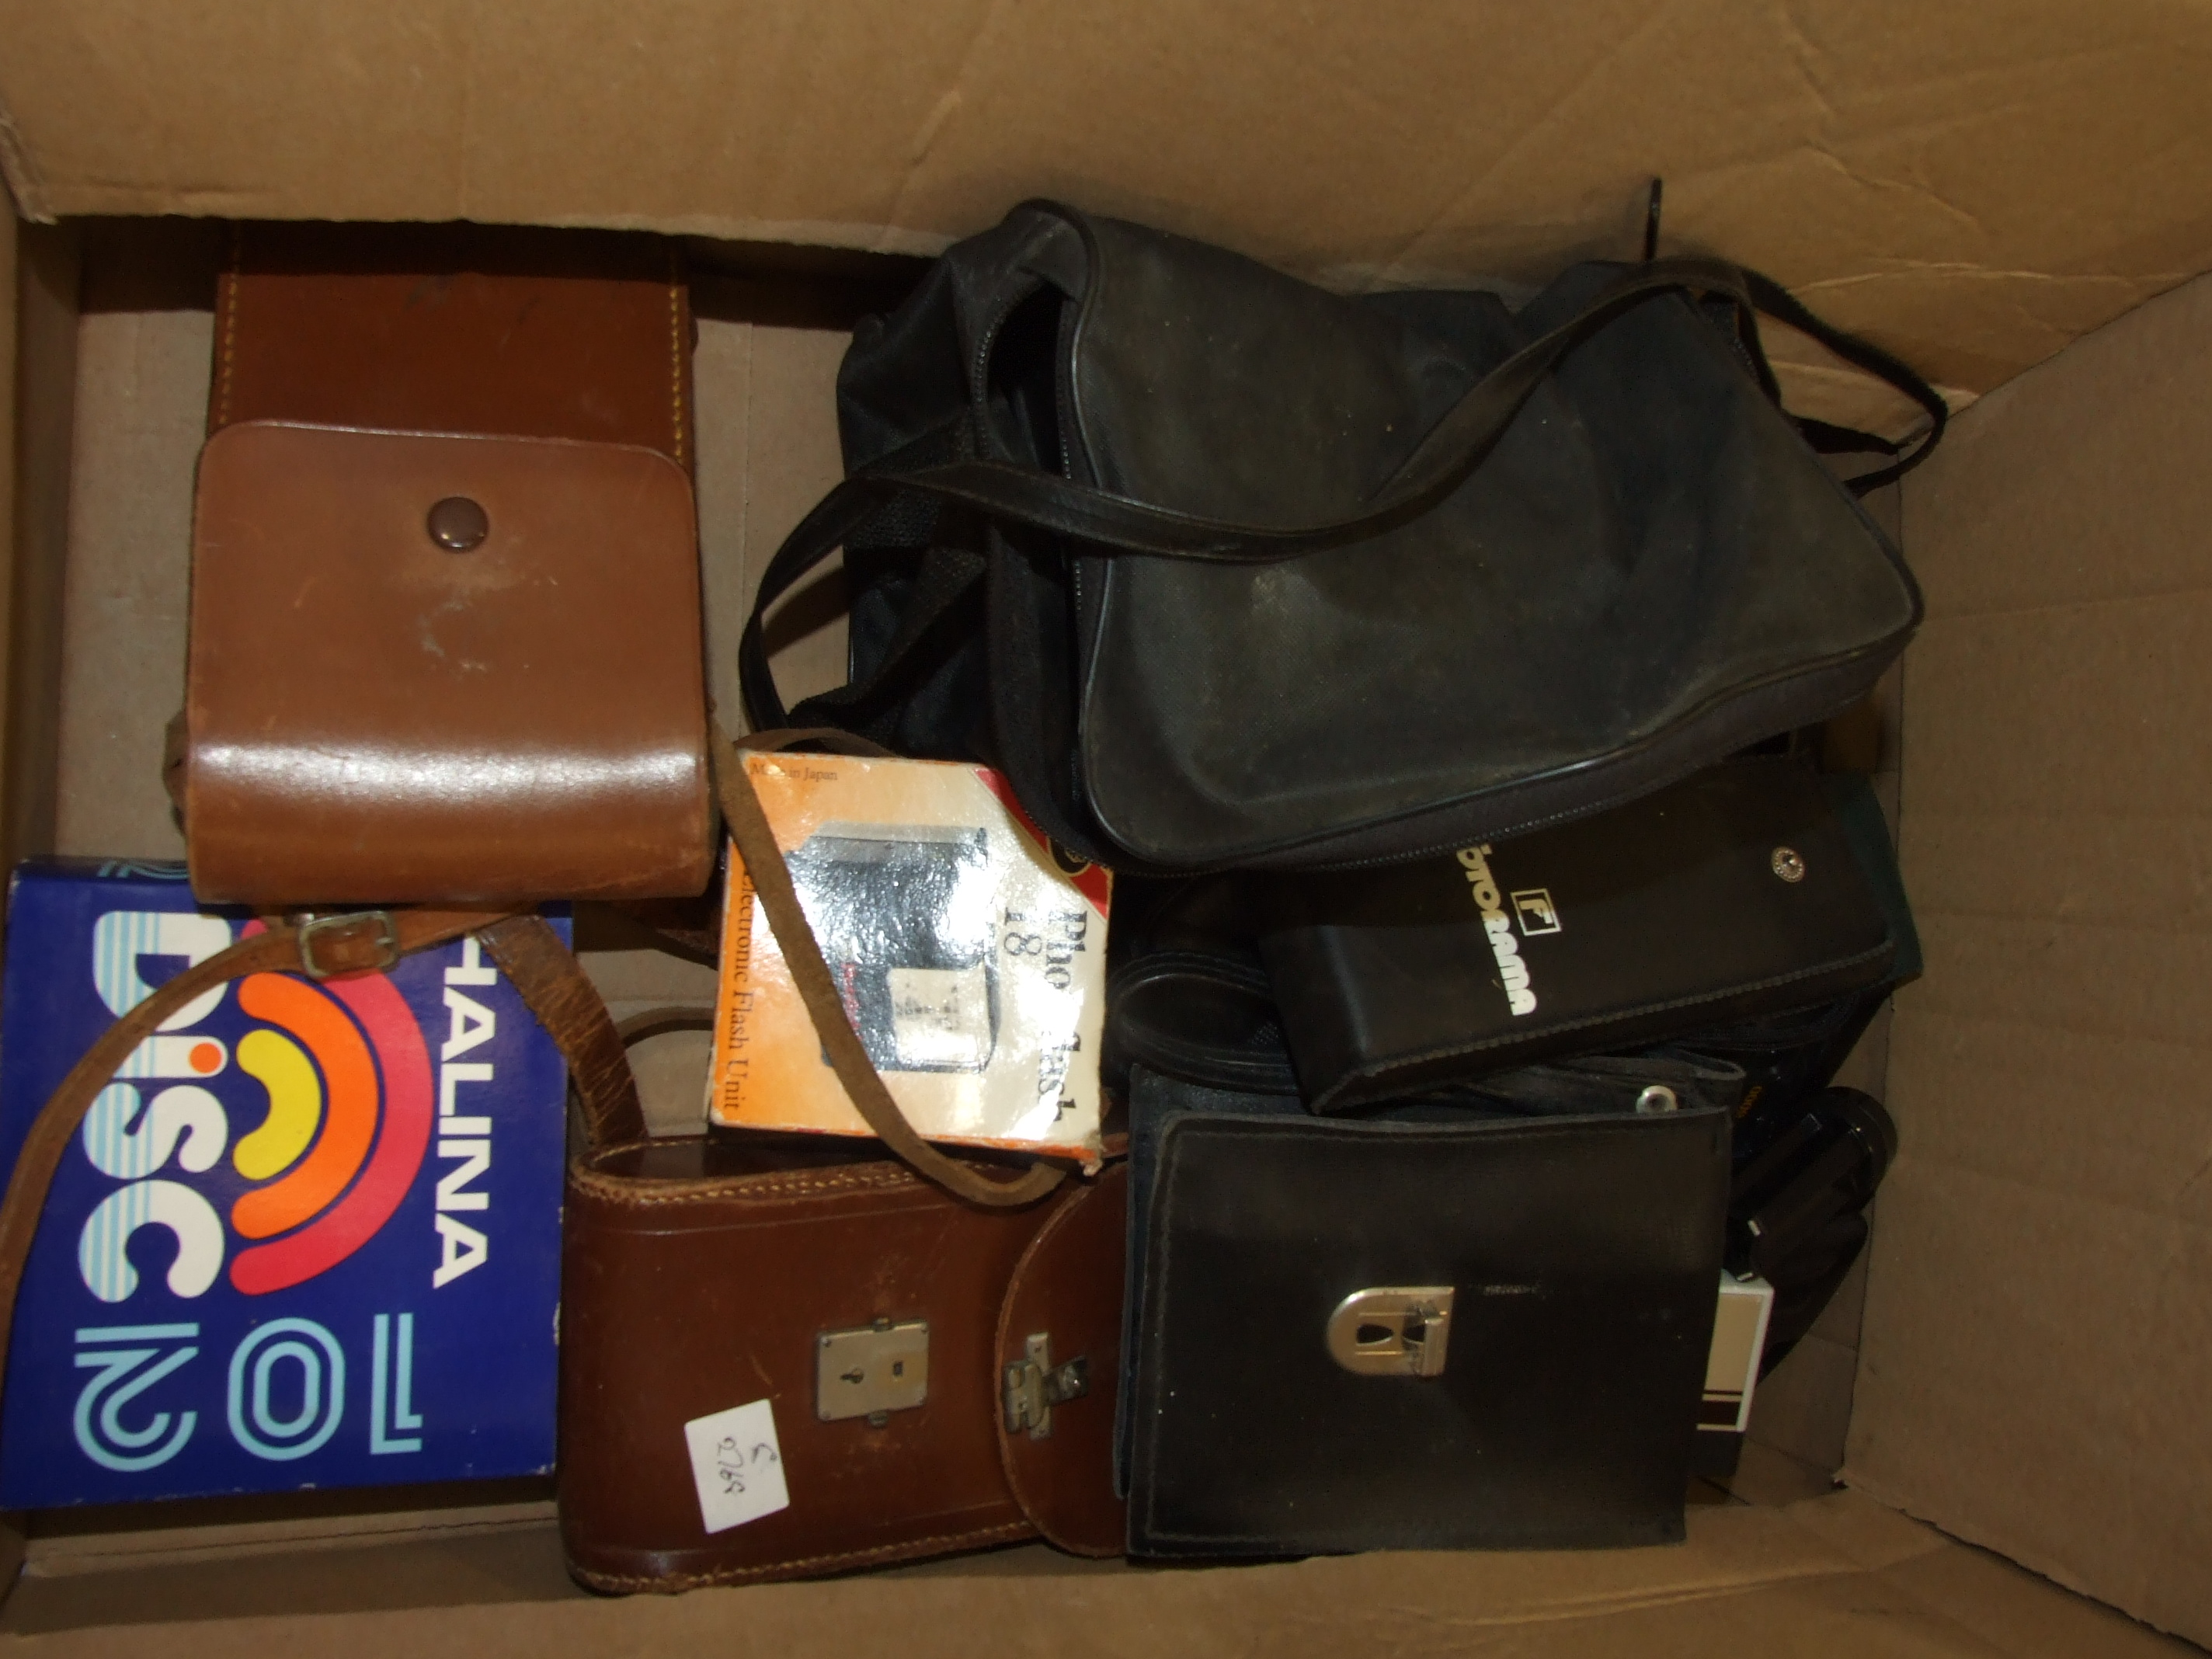 A Zenit-E 35mm camera in case, a Halina camera, other cameras, a pair of Milo 7 x 18 field glasses - Image 2 of 3